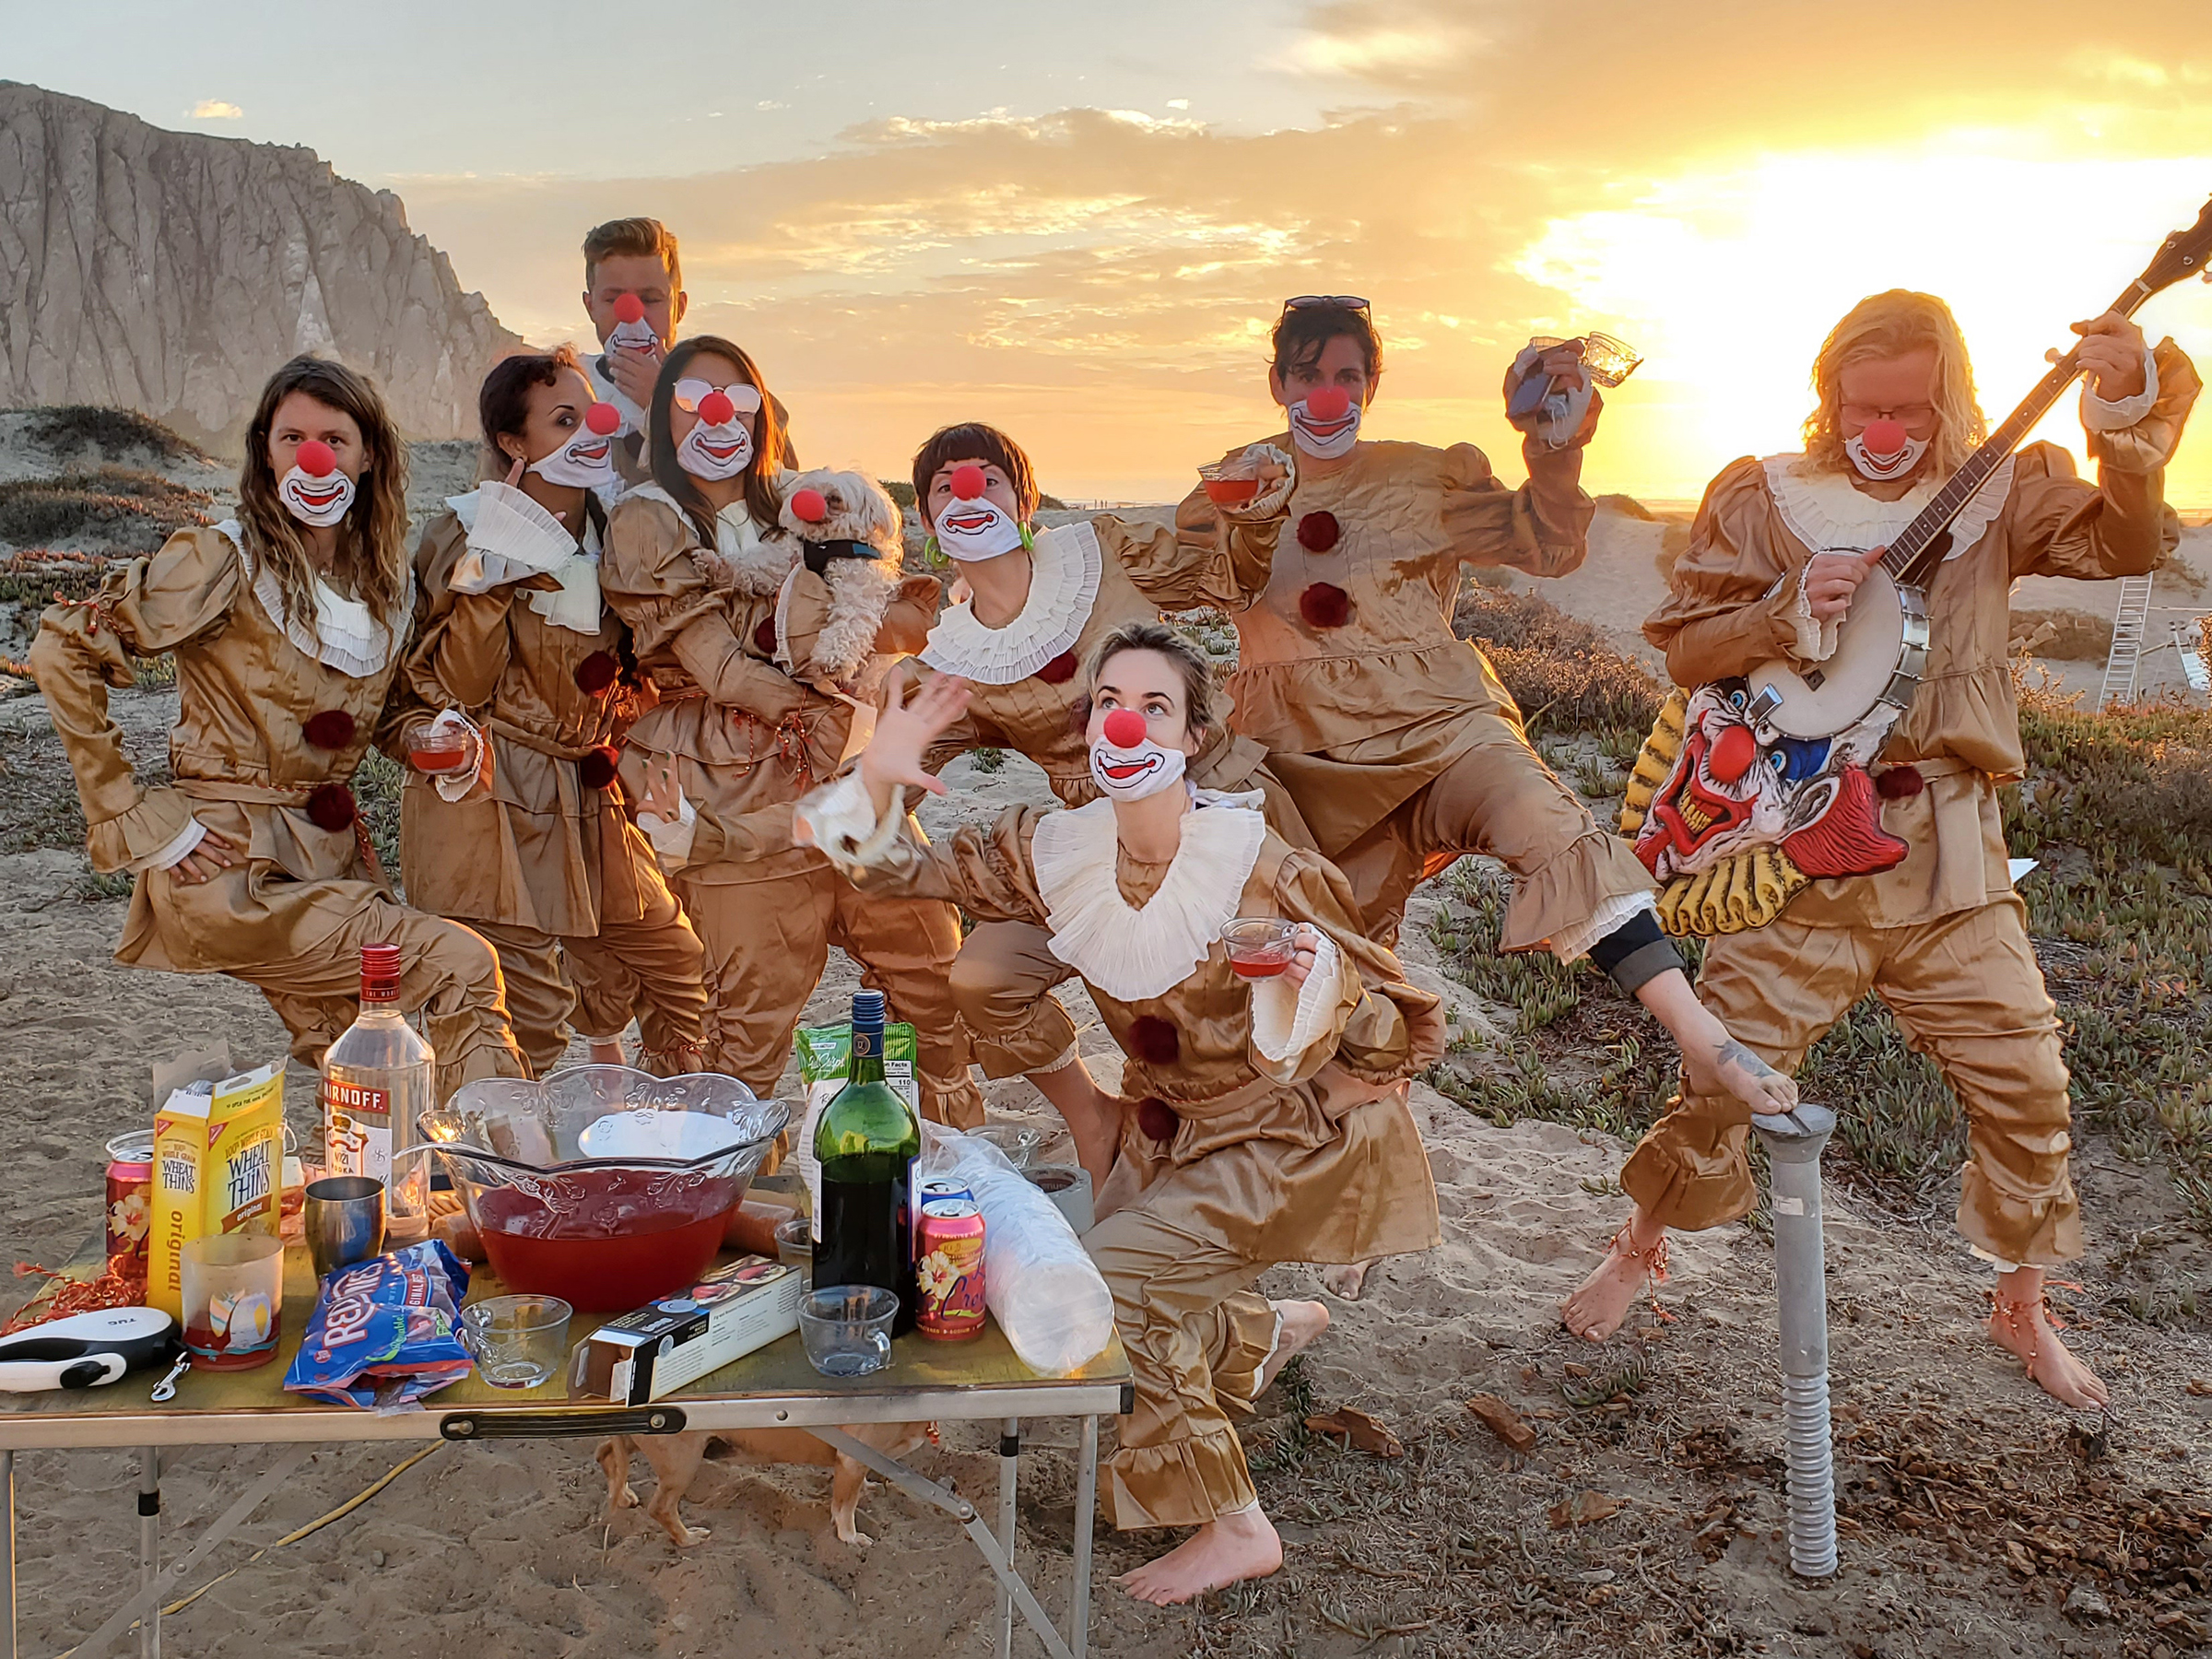 group of people dressed as clowns partying